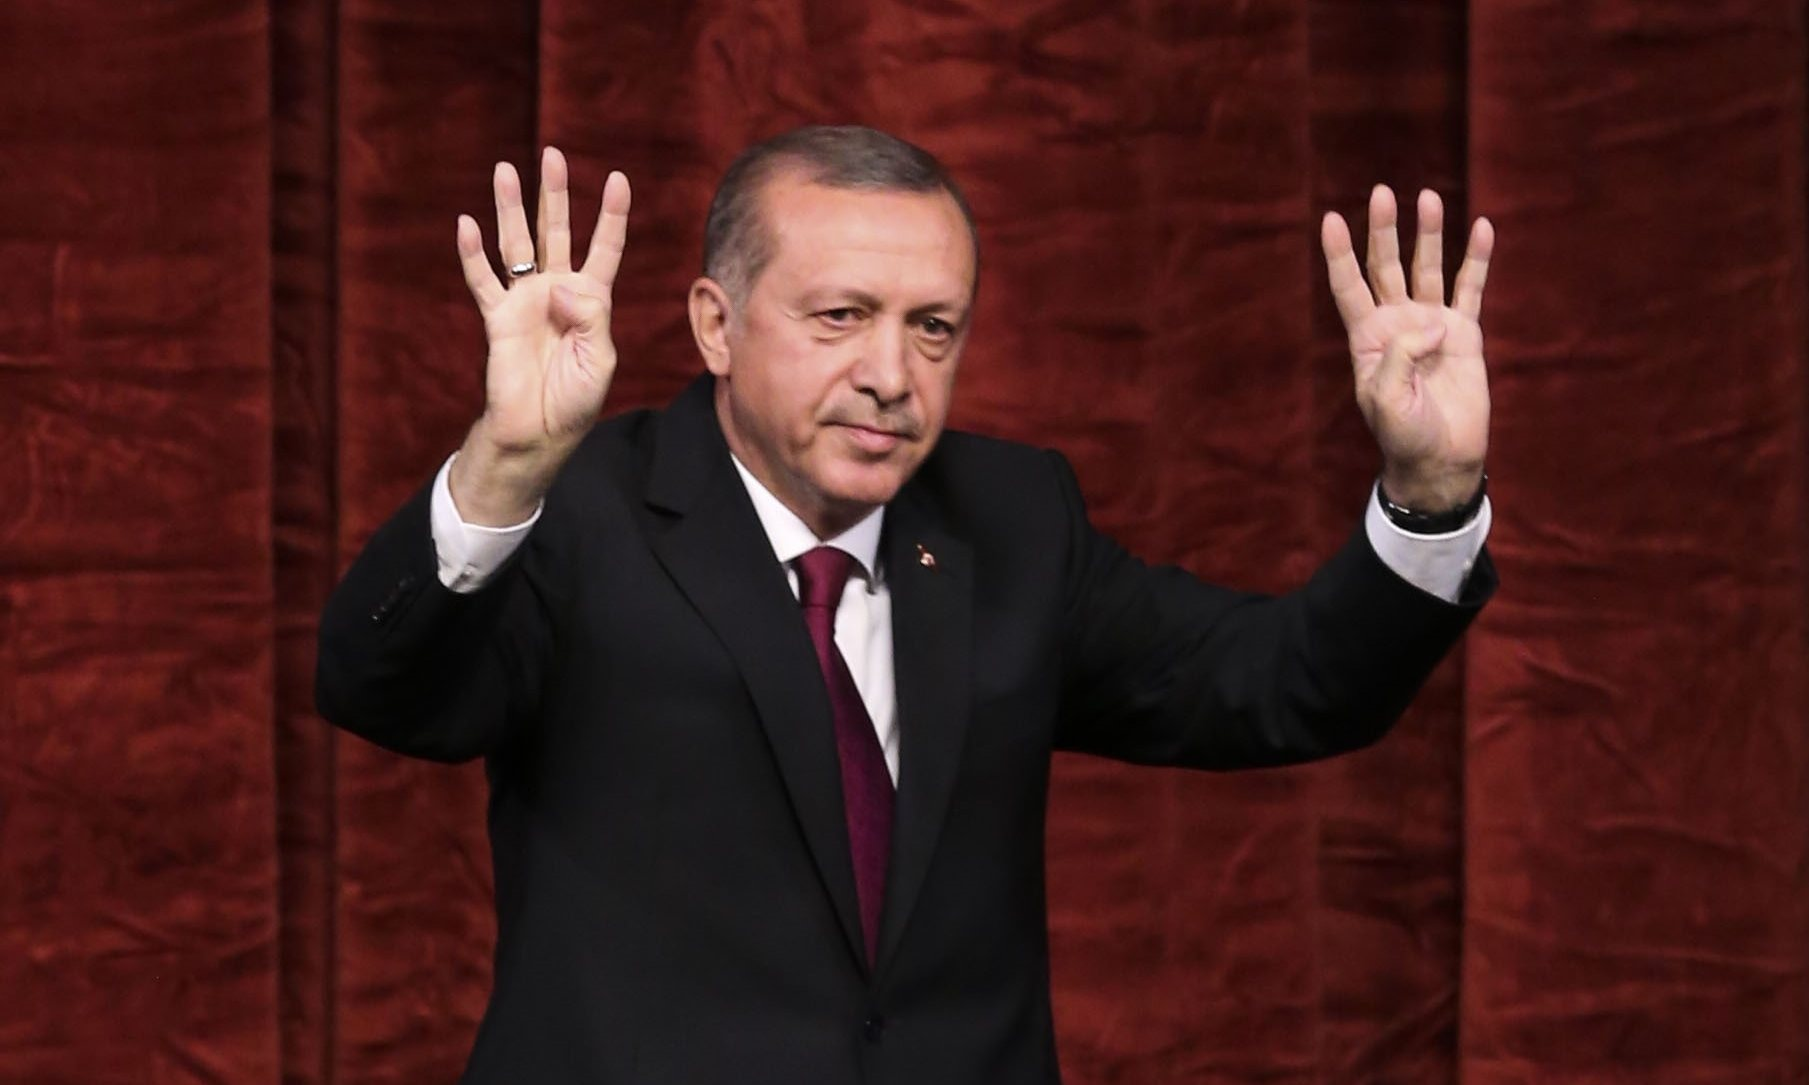 Turkish president Recep Tayyip Erdogan he will shut the country's military academies. Photograph: Anadolu Agency/Getty Images